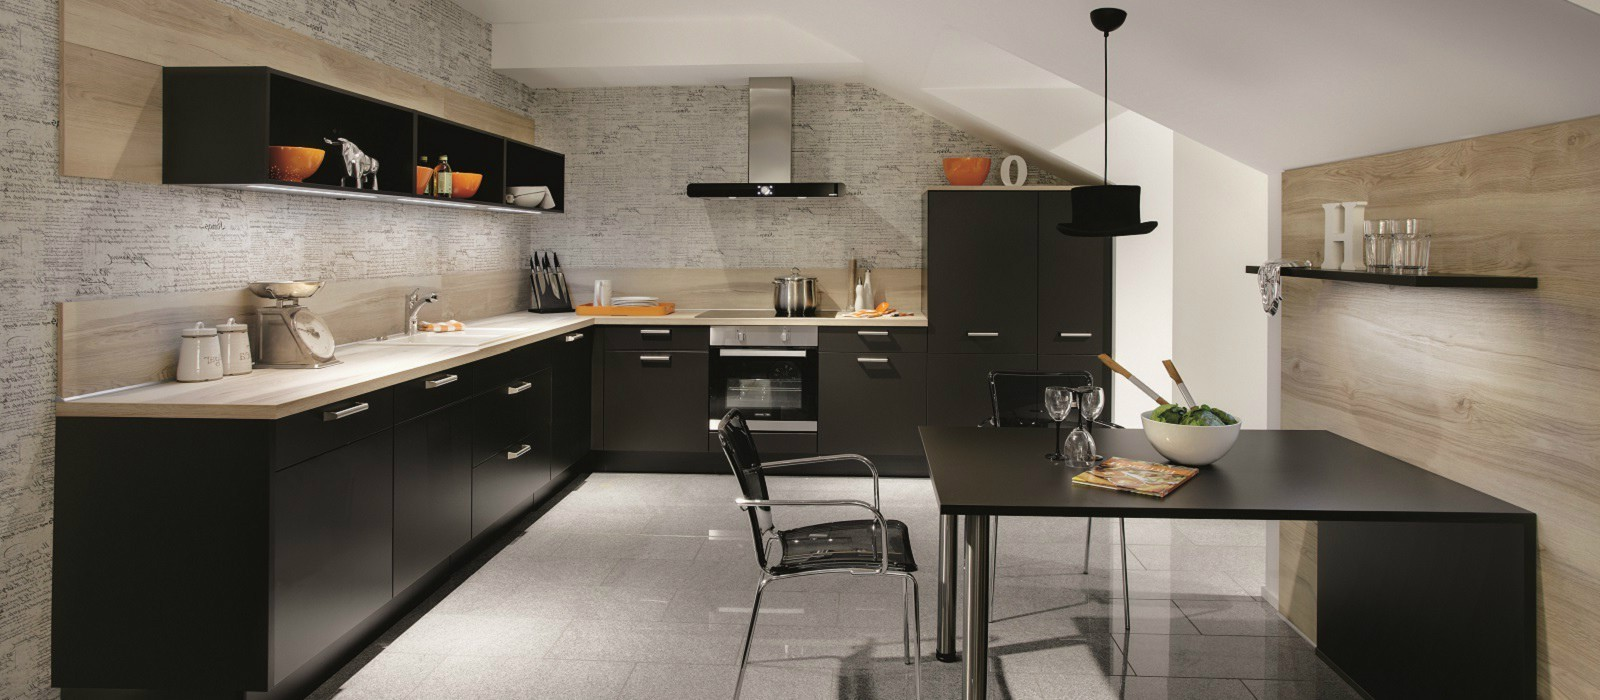 meuble de cuisine encastrable maison design. Black Bedroom Furniture Sets. Home Design Ideas